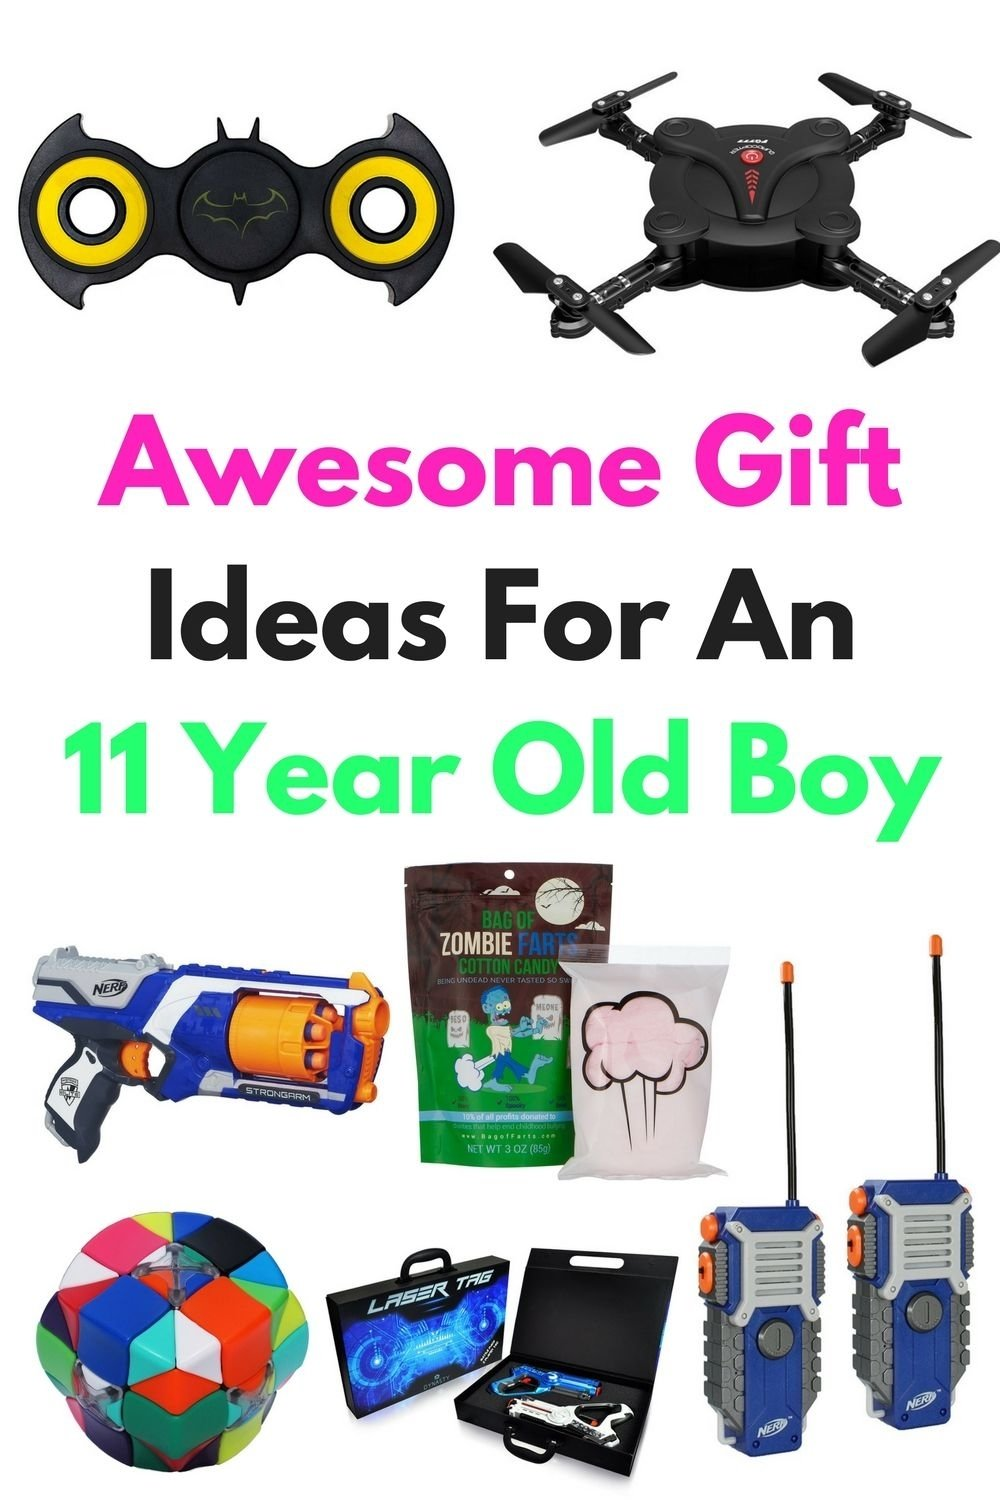 10 Ideal Christmas Gift Ideas For 12 Year Old Boy